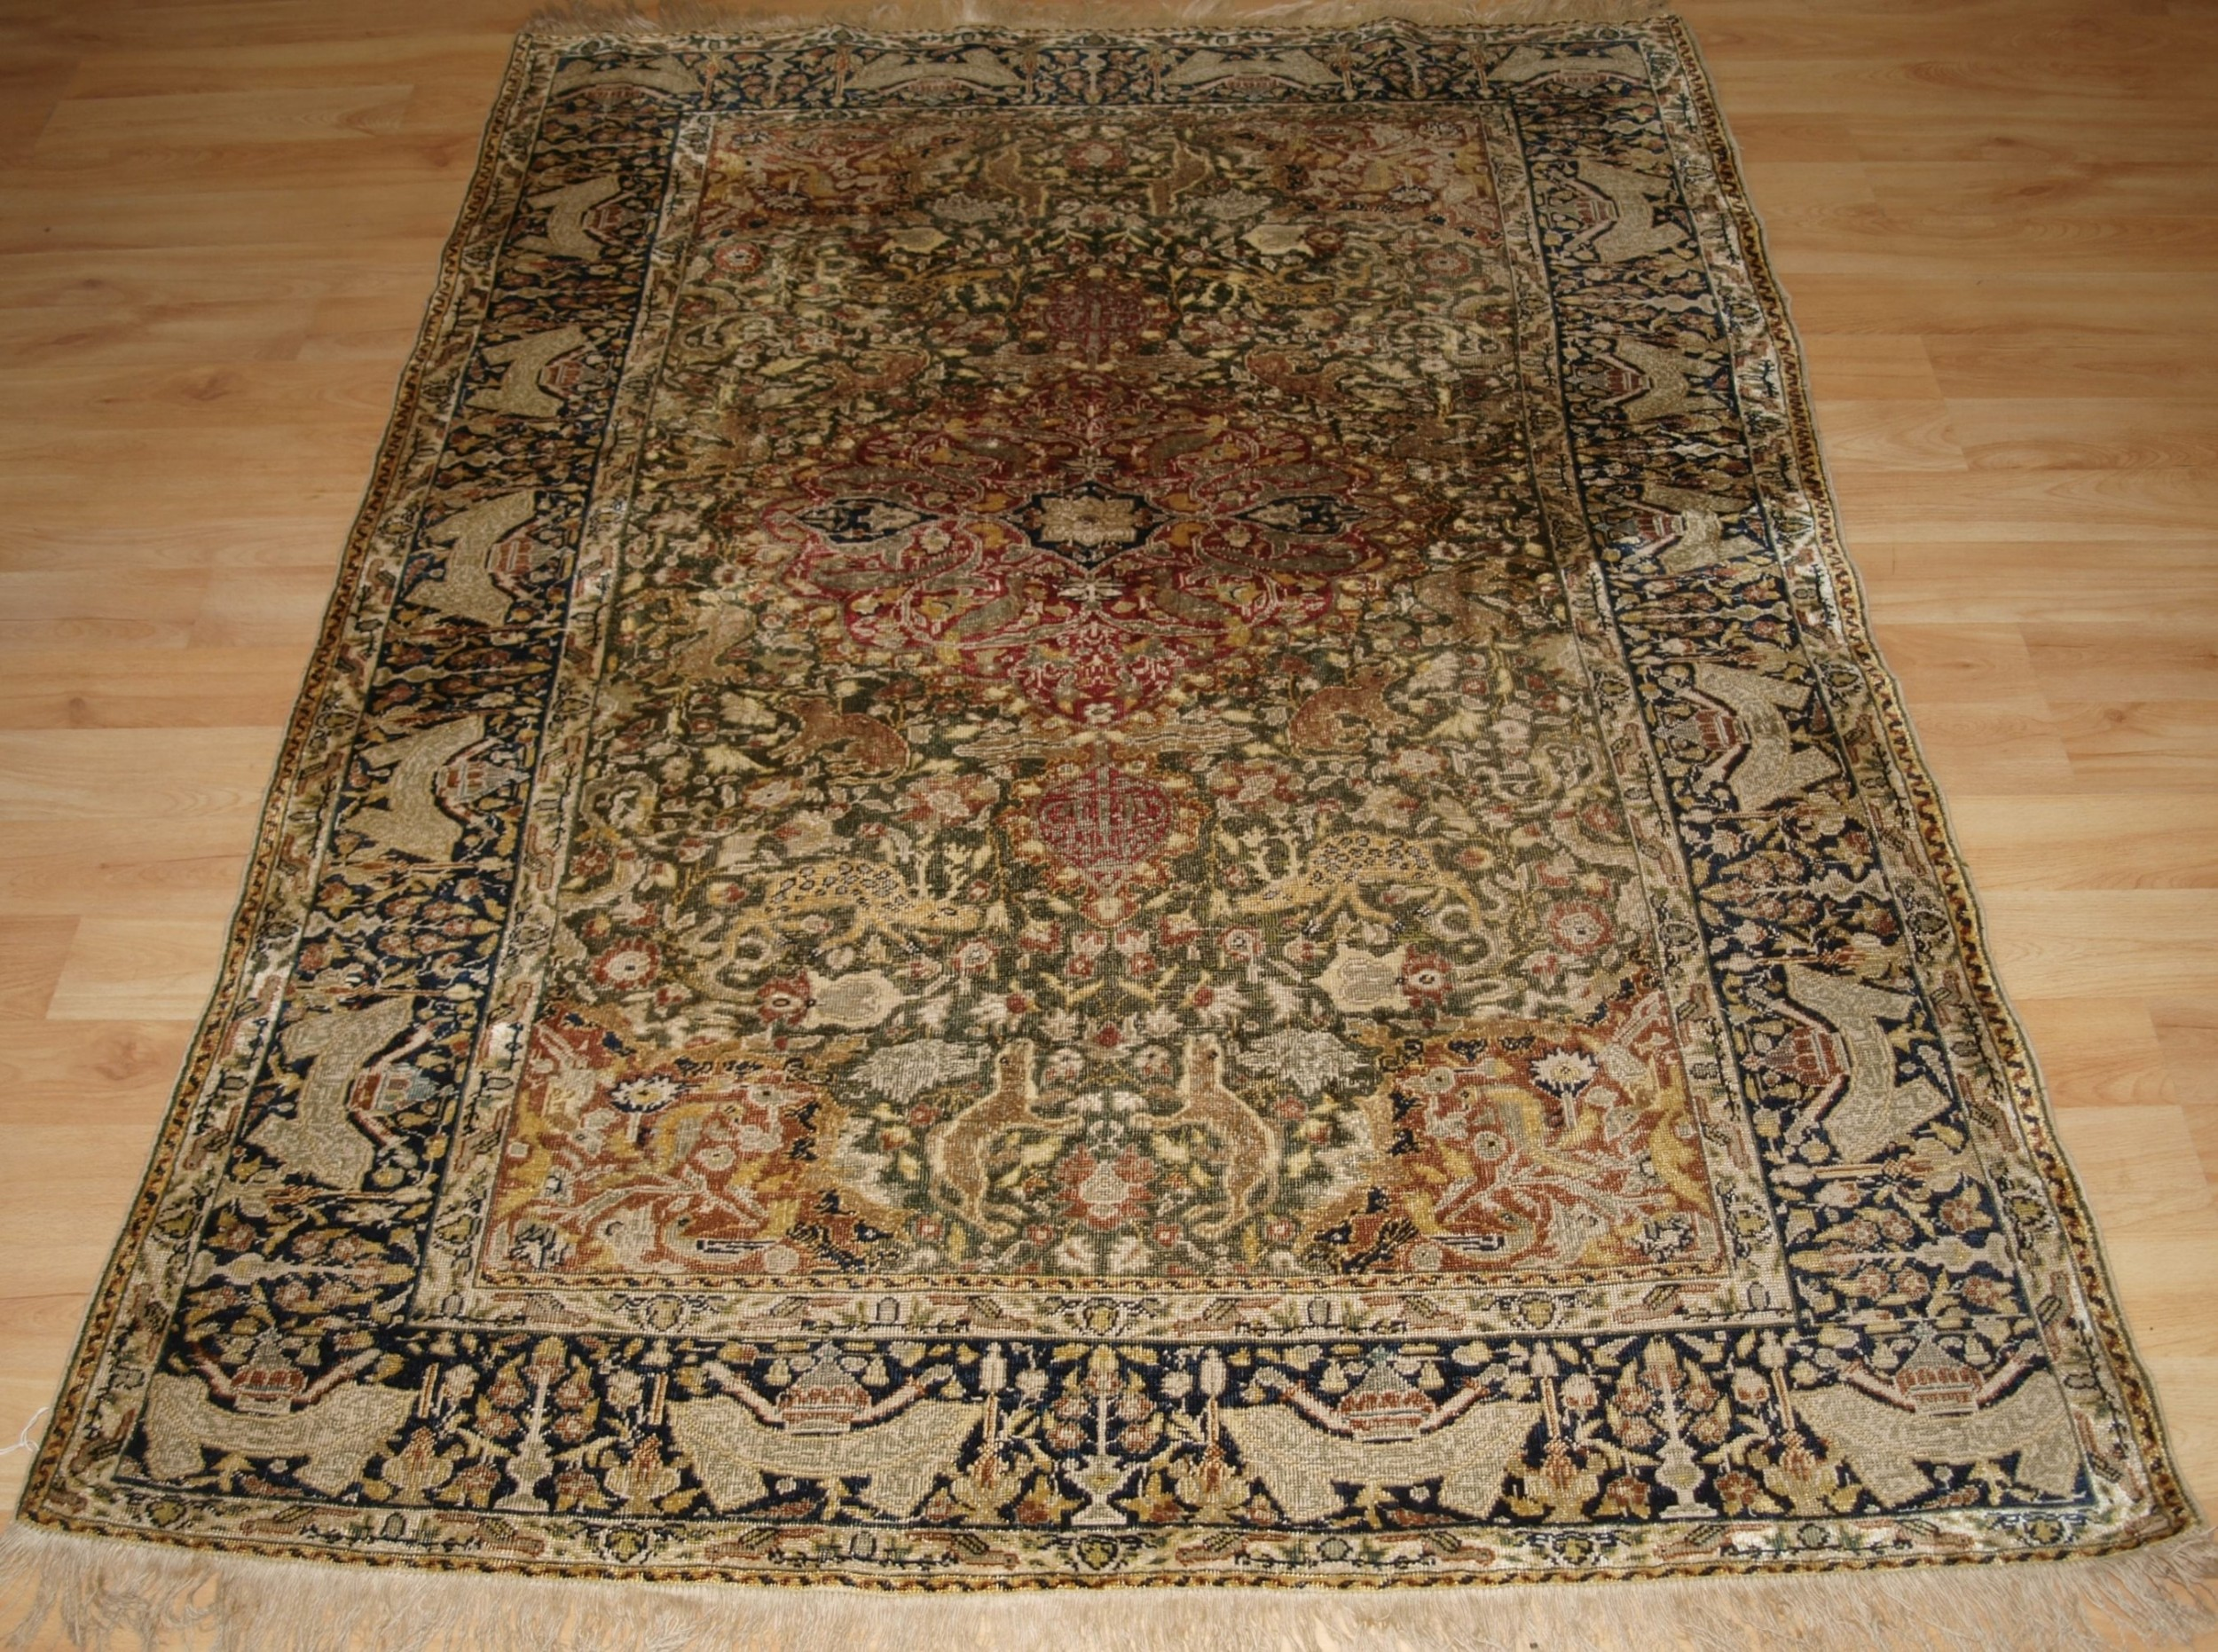 antique turkish kayseri pictorial silk rug with hunting design circa 1890